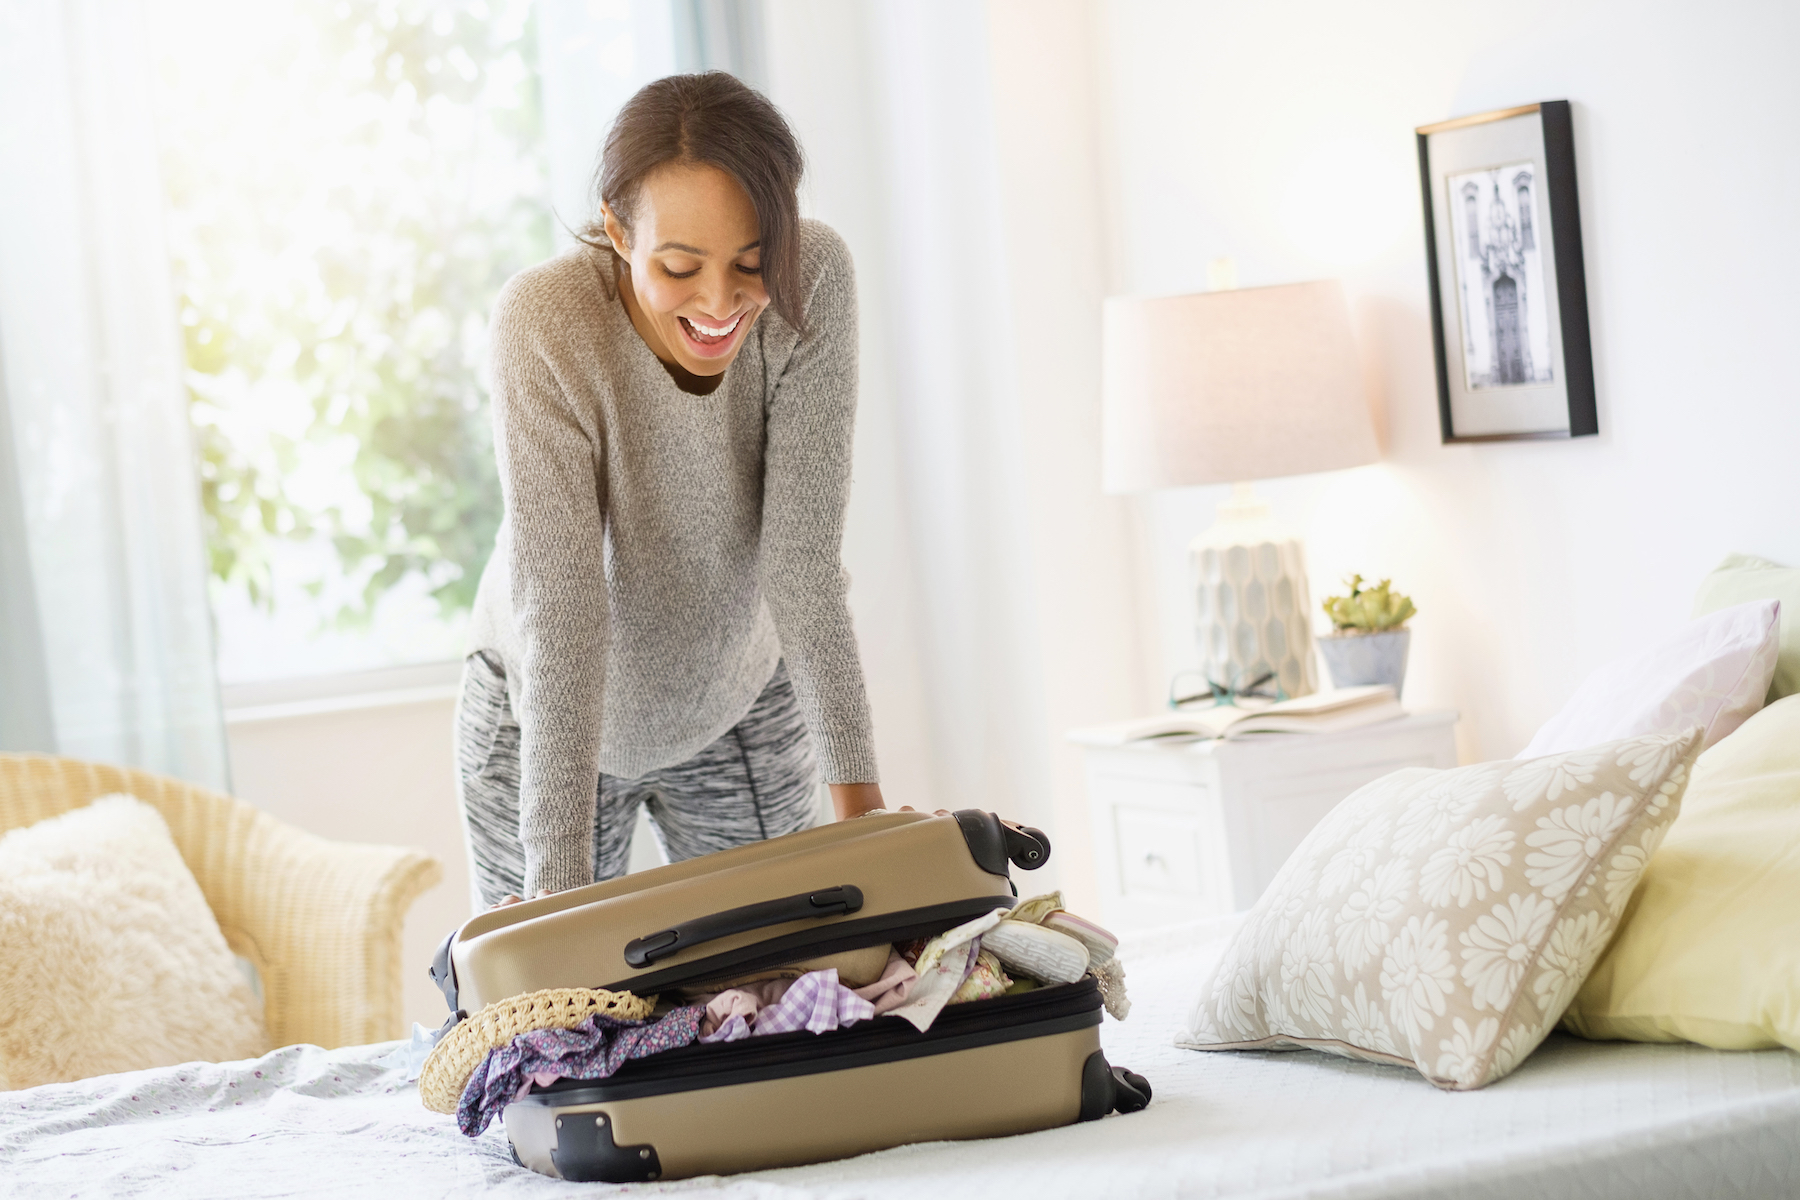 Woman packing suitcase on bed